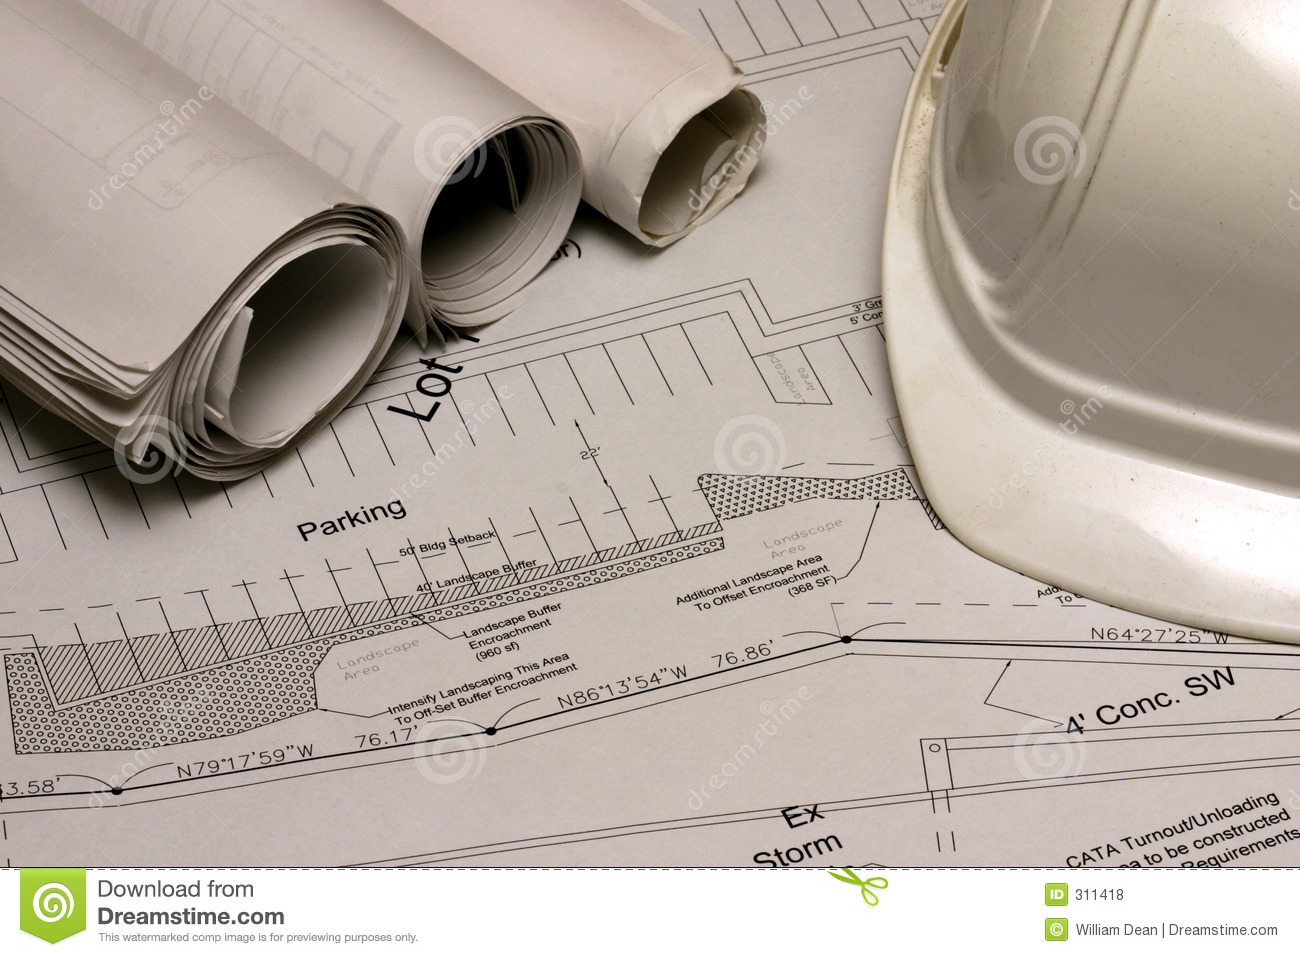 Construction plans 2 royalty free stock photos image 311418 for Construction plans